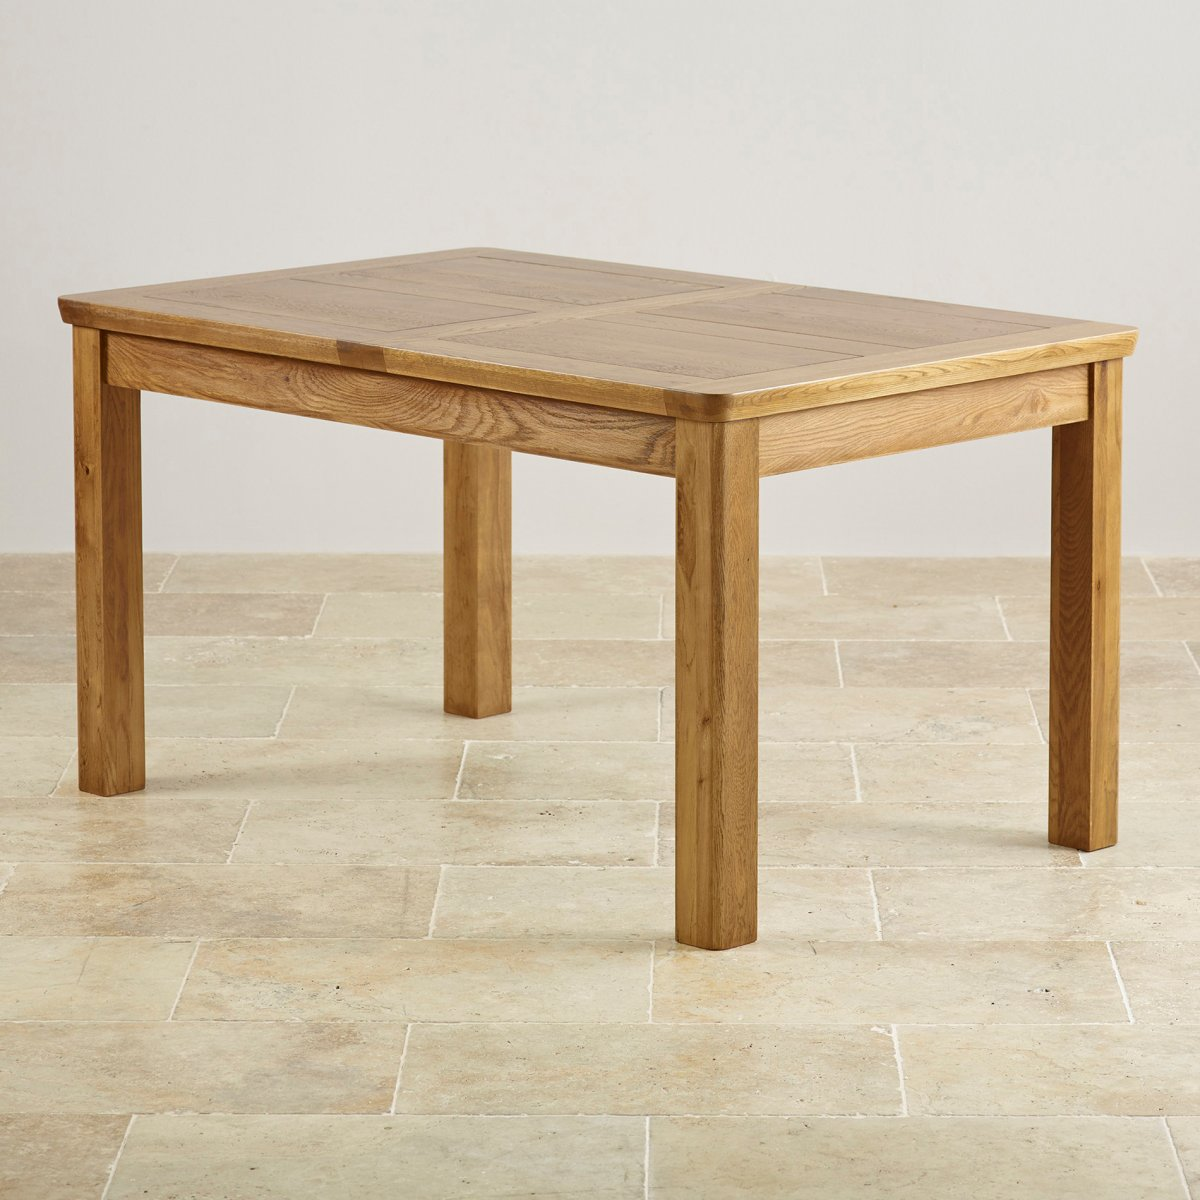 Orrick 4ft 7 x 3ft rustic solid oak extending dining table for Table 6 3 asce 7 05